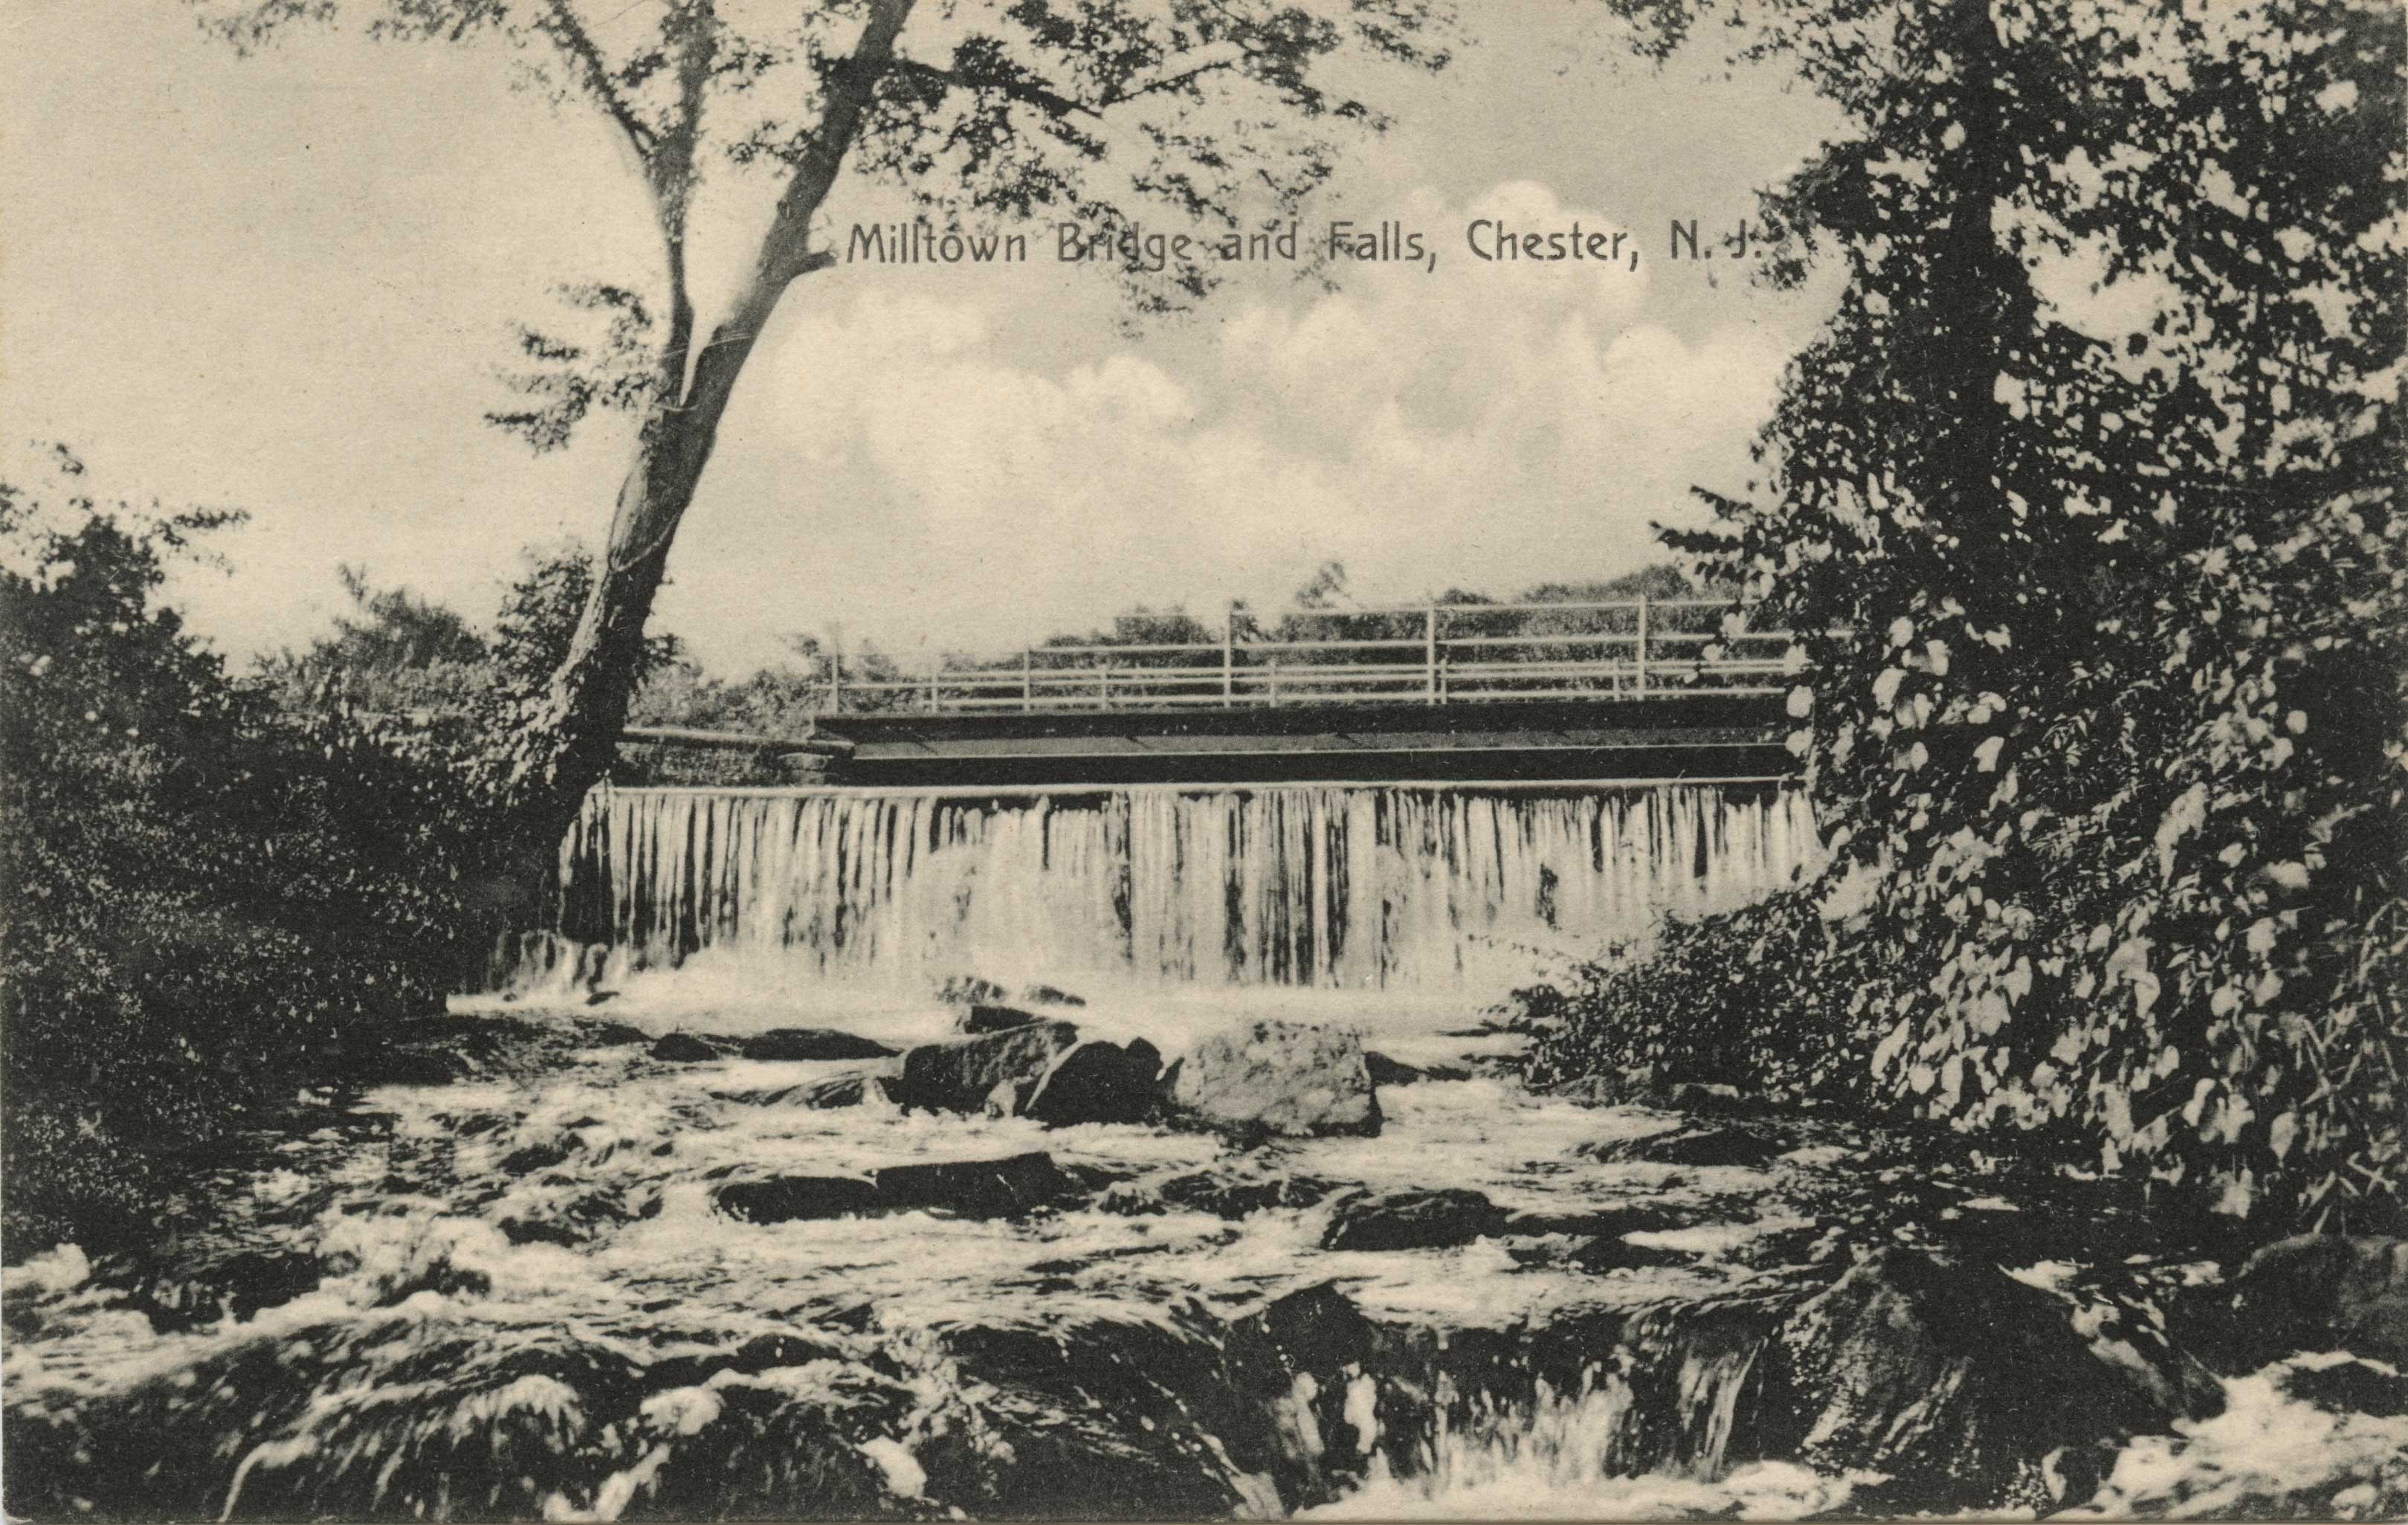 Milltown Bridge and Falls